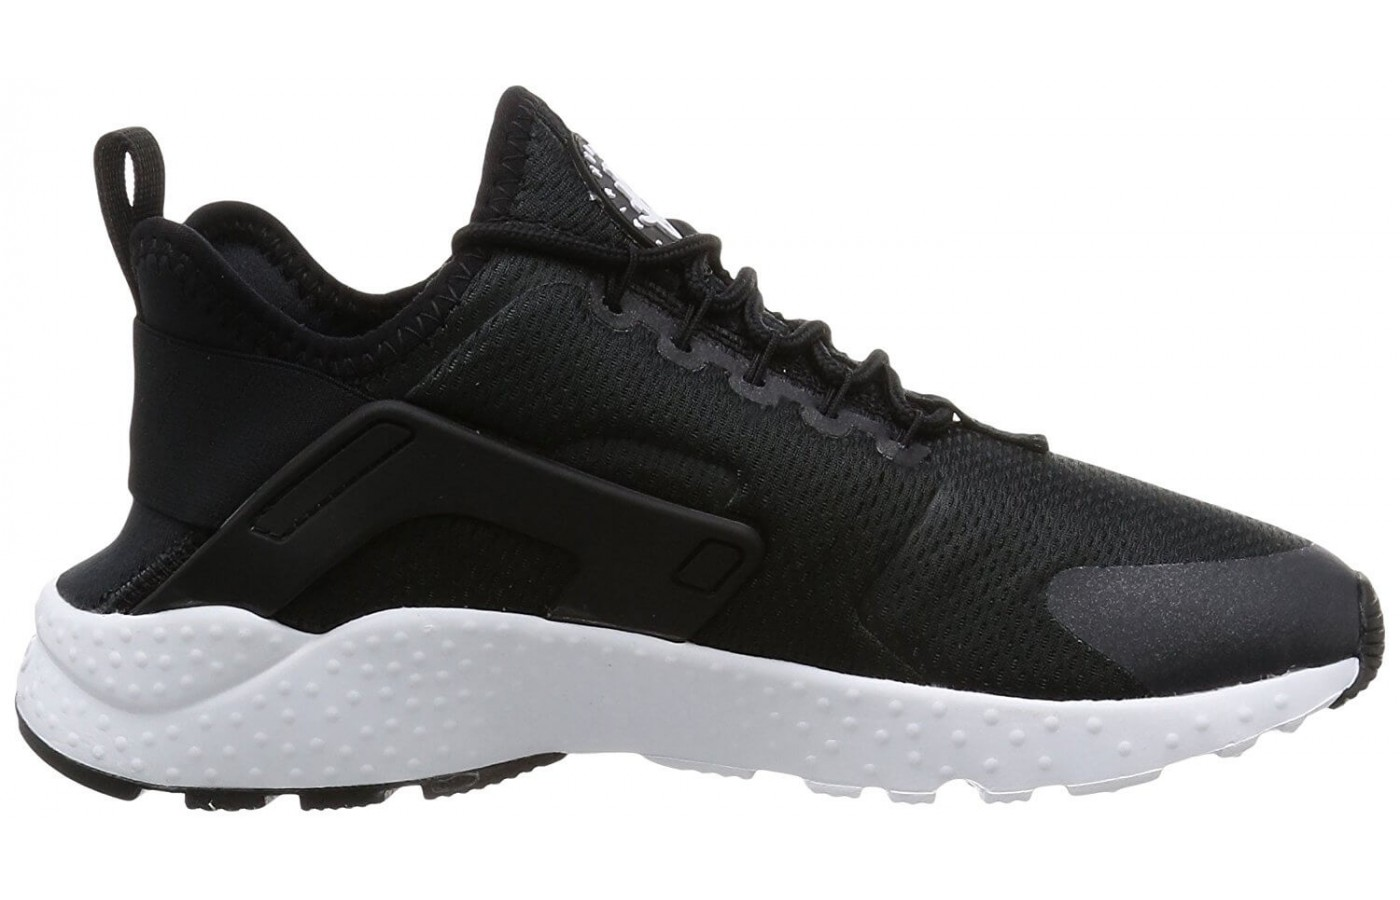 EVA cushioning in the midsole of the Nike Air Huarache Ultra provides excellent support.